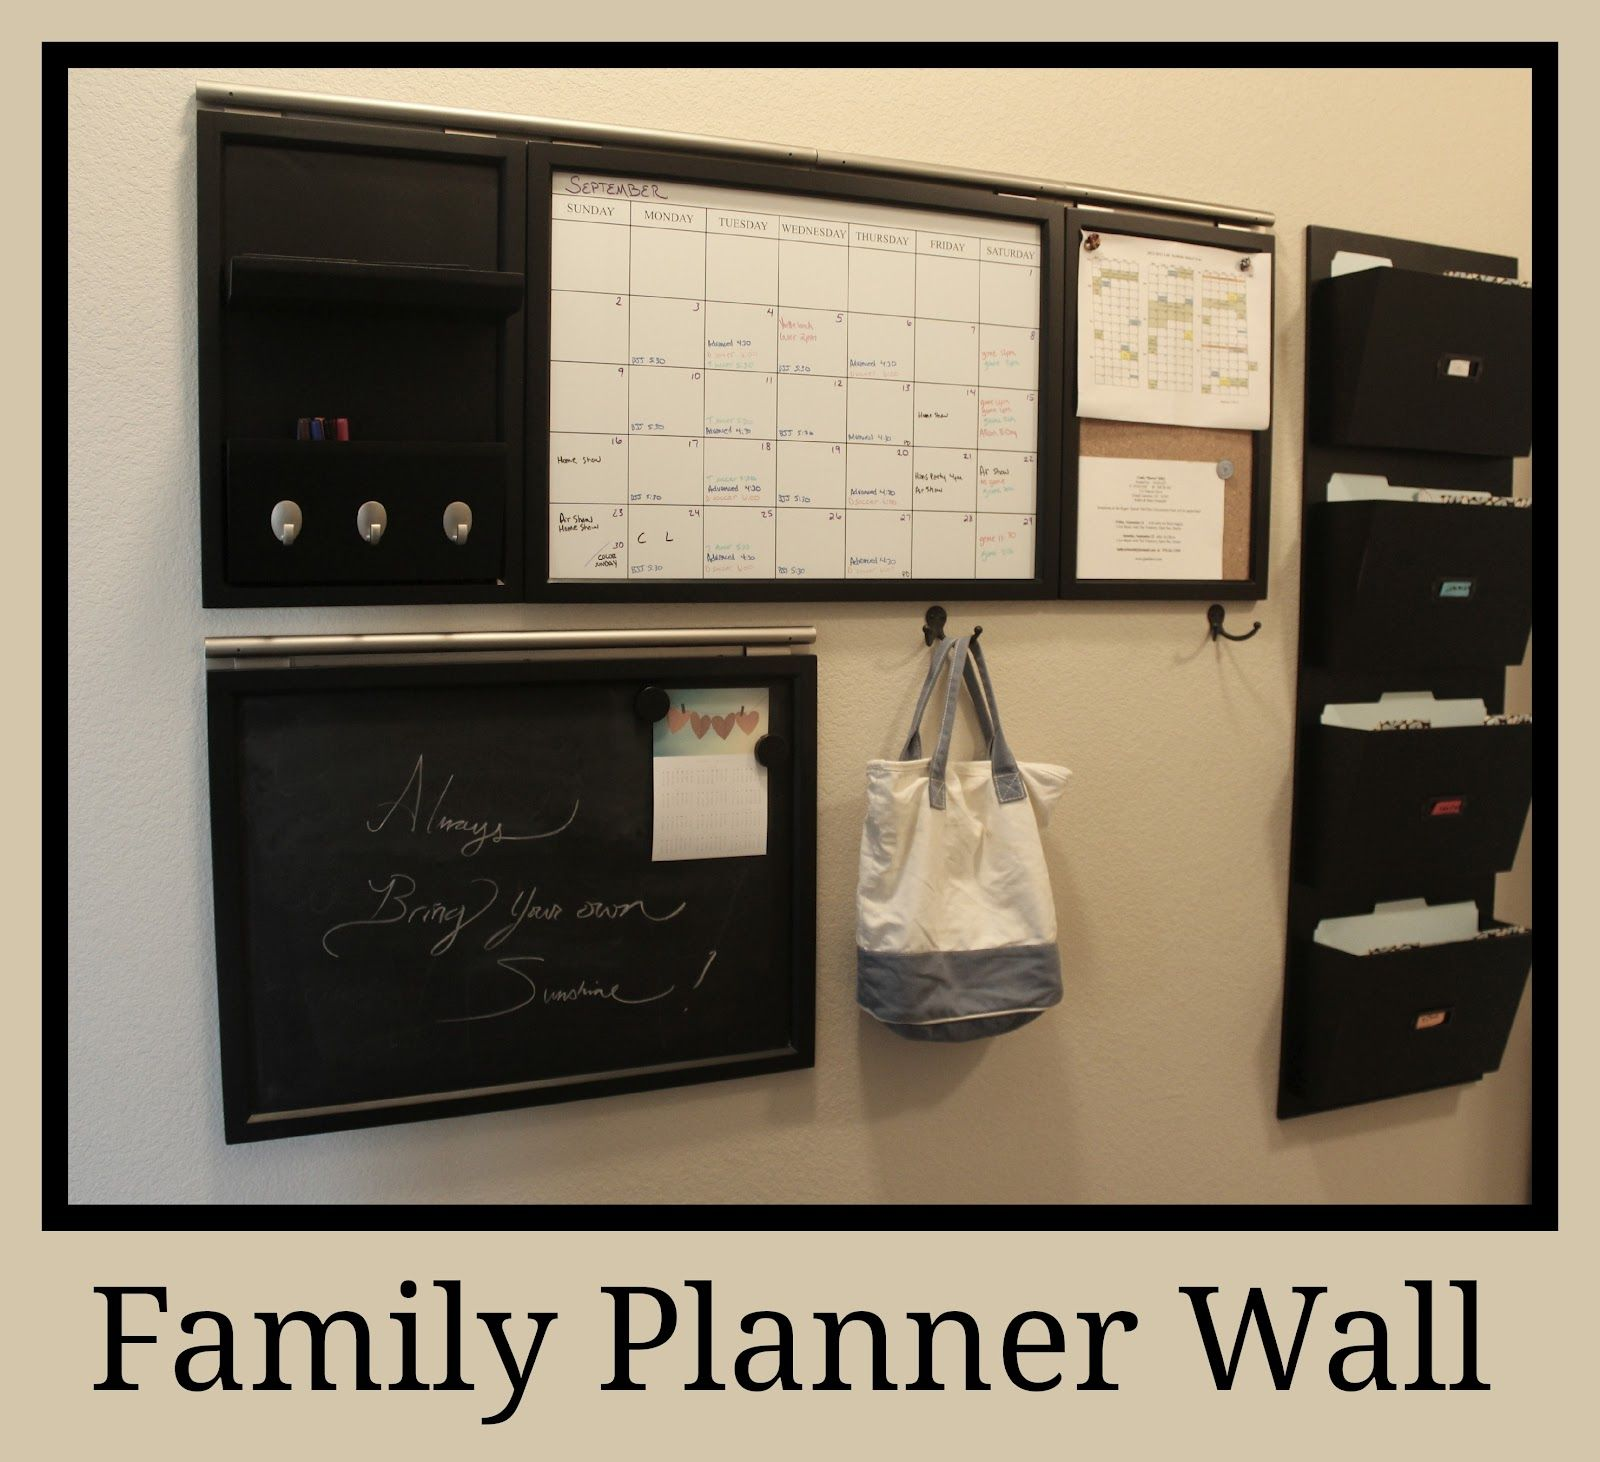 Moore Minutes The School Year Organized Our Family Planner Wall